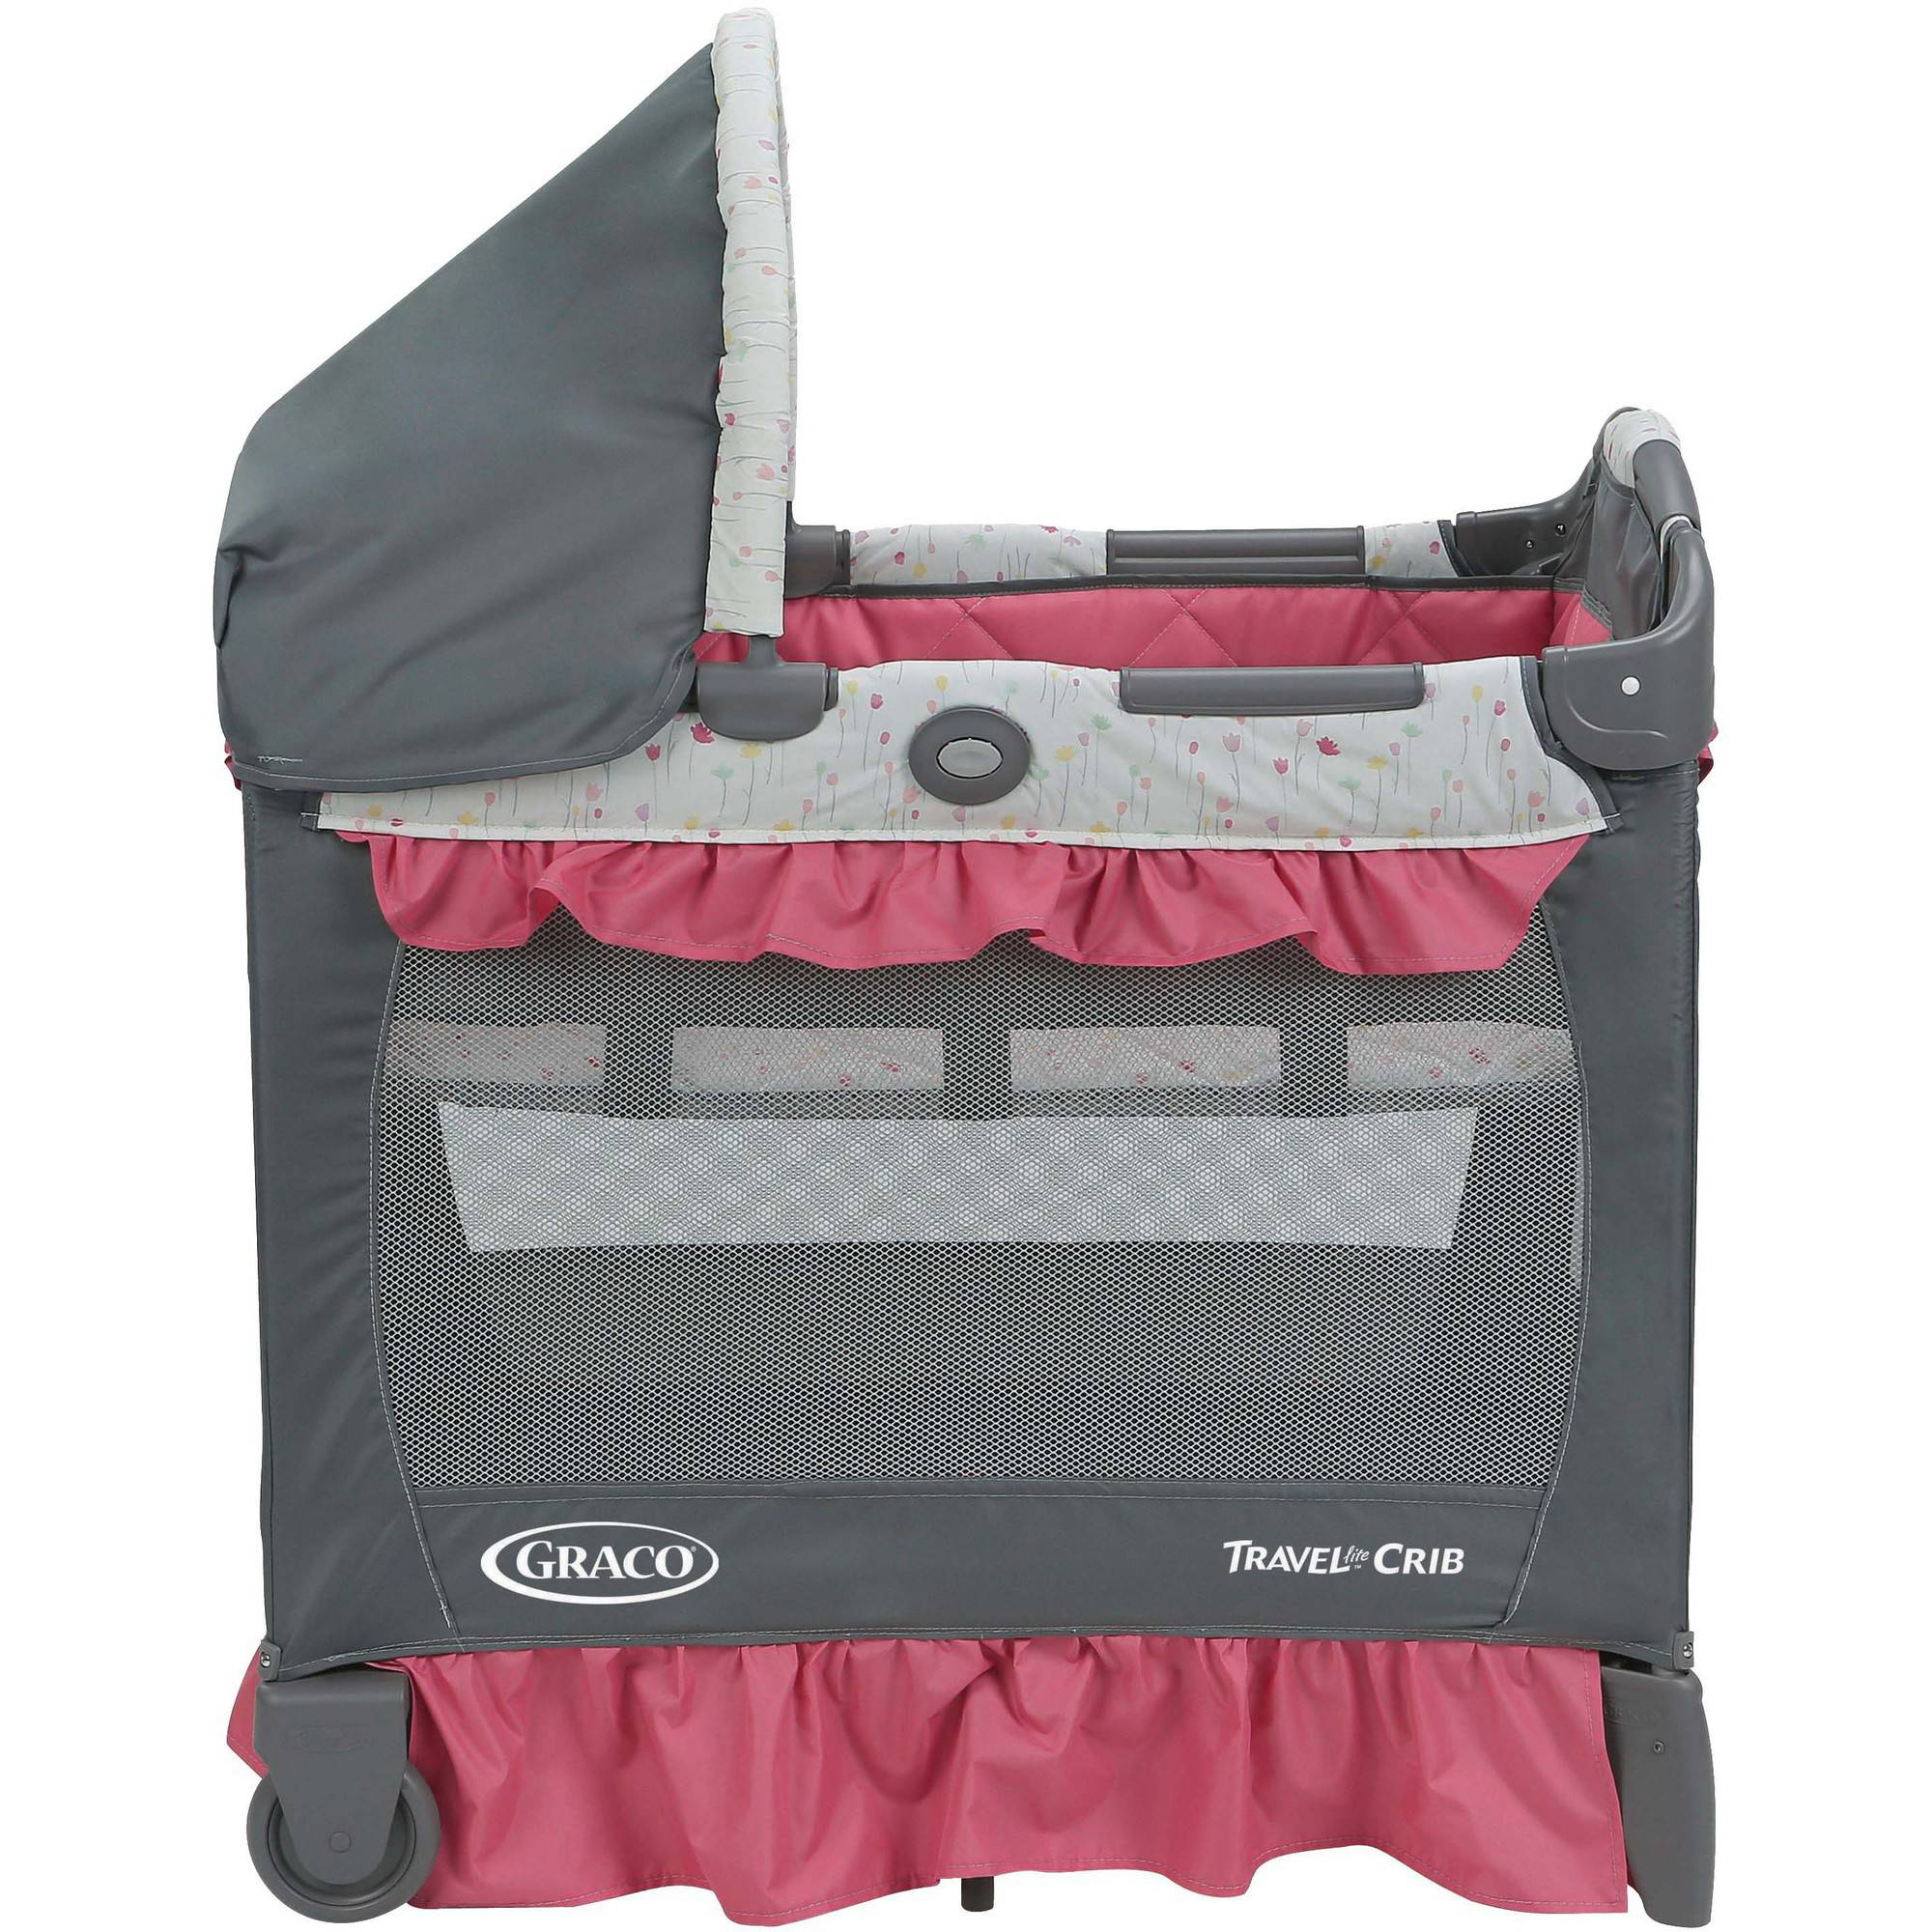 Graco Pack N Play Portable Playard Carnival Portable Charger Cost Portable Radio With Excellent Fm Reception Portable Washer Ratings: Graco Pack 'n Play Travel Lite Crib Portable Baby Playard